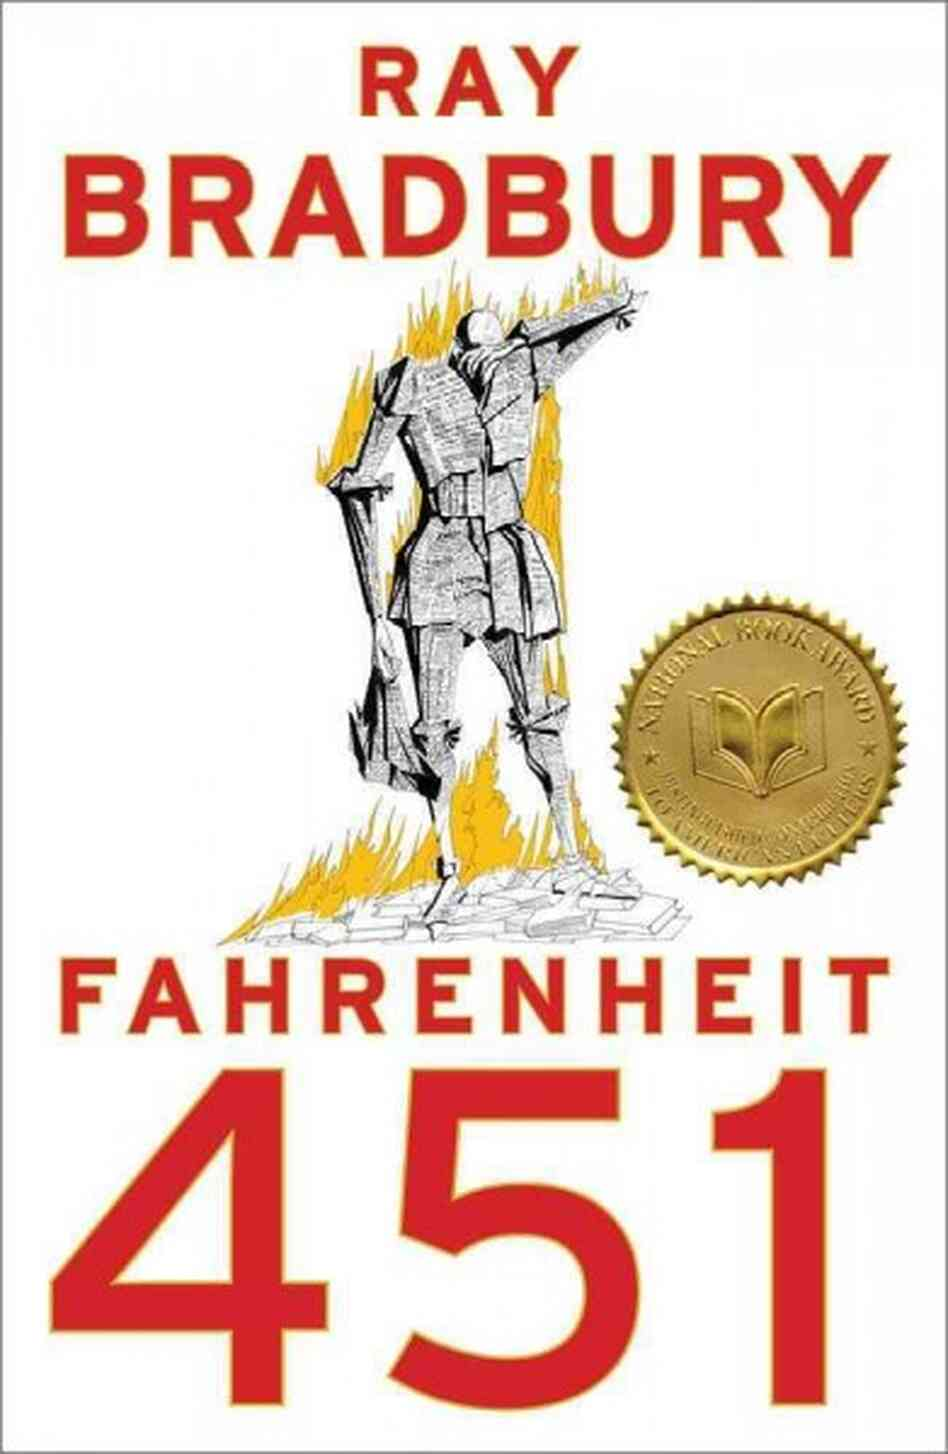 Paperback 159 pages simon schuster list price 11 99 purchase